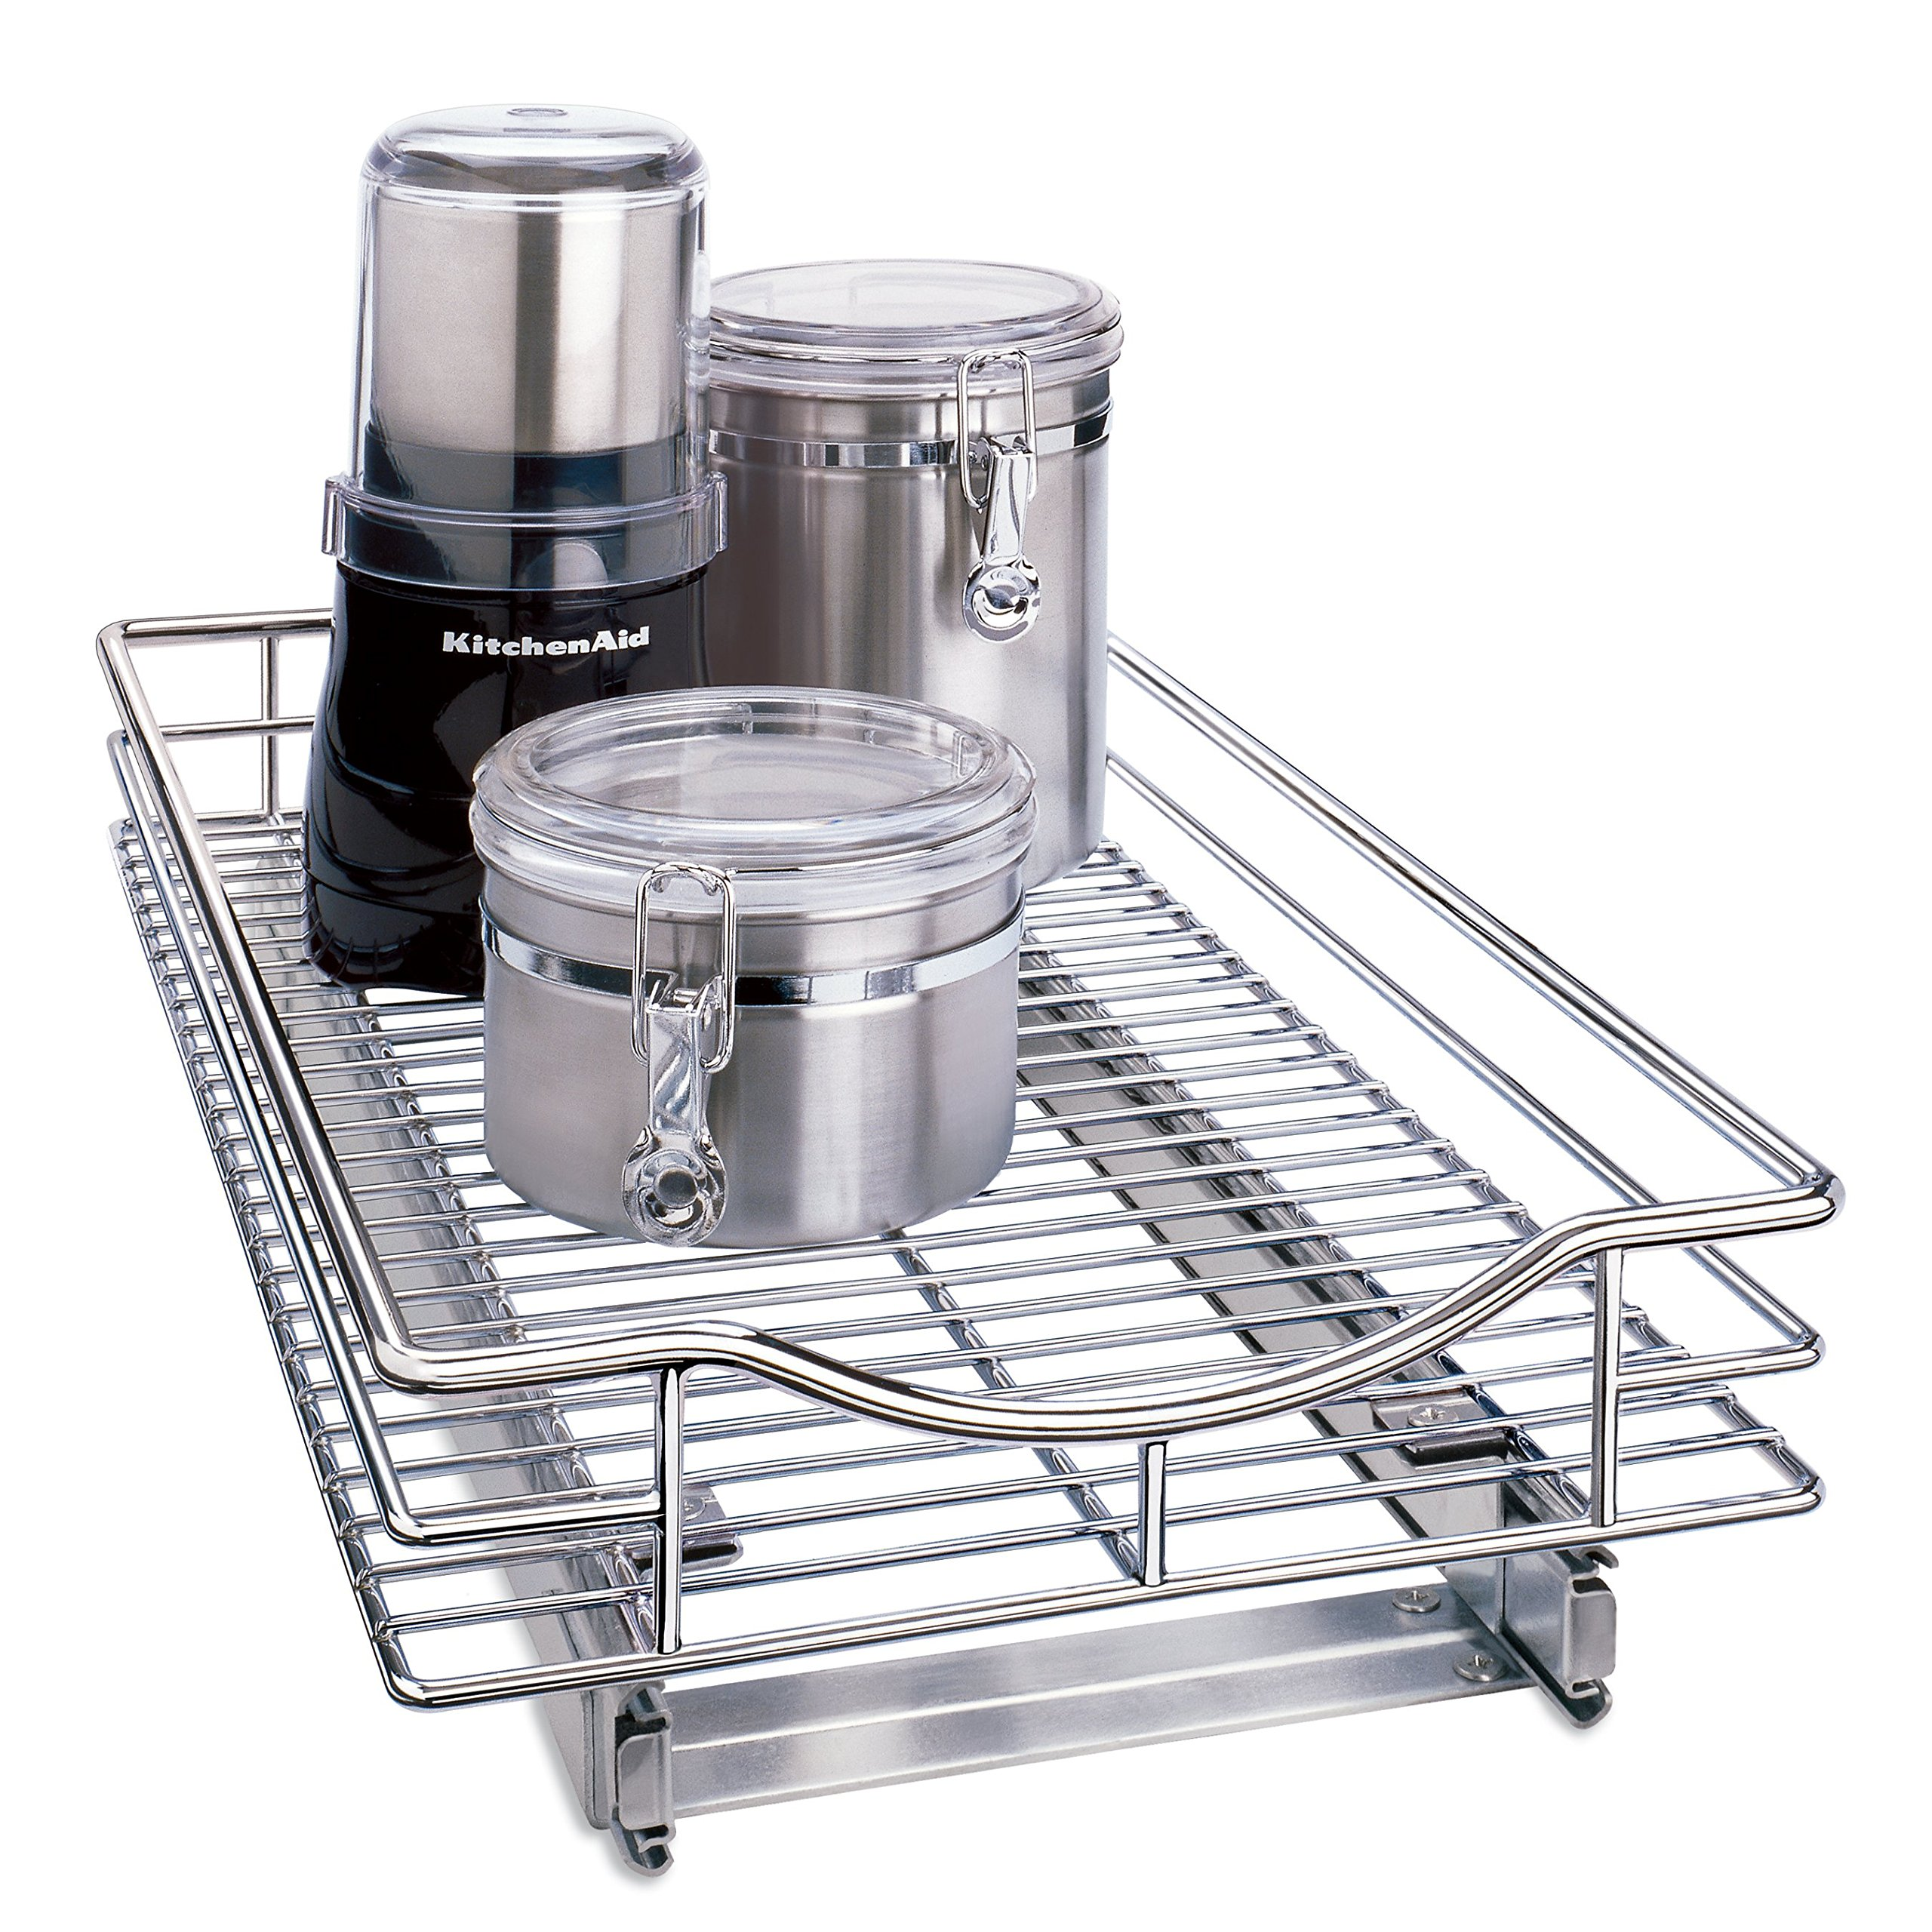 Pull Out Kitchen Cabinet Organizers: Professional Roll Out Cabinet Organizer Pull Out Kitchen